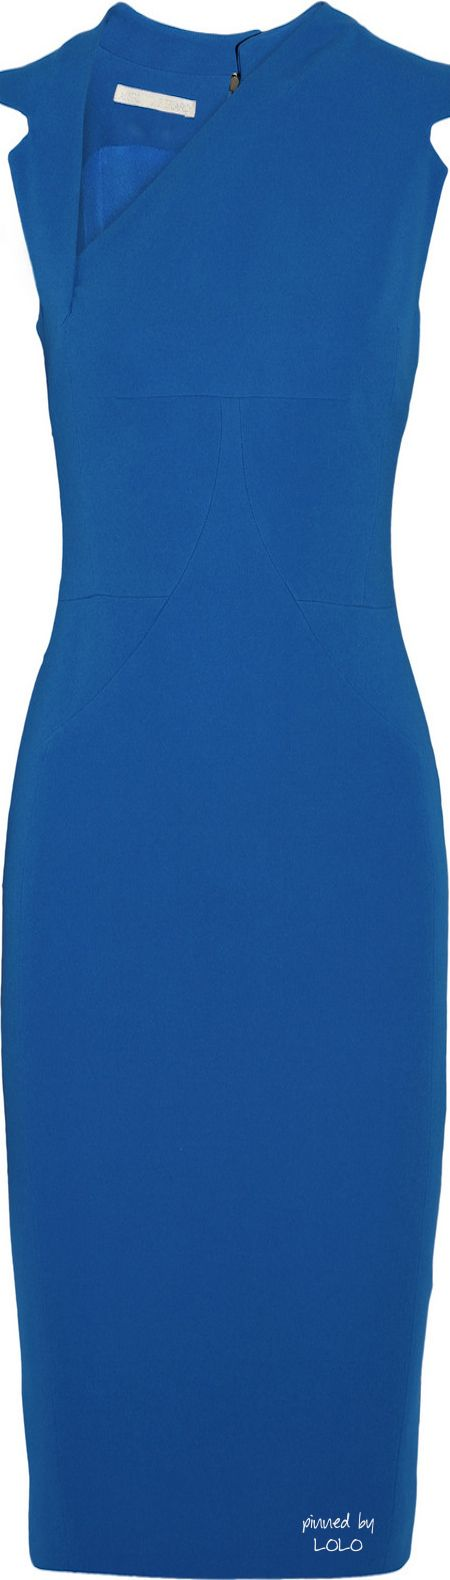 Antonio Berardi Blue Asymmetric Stretchcrepe Dress